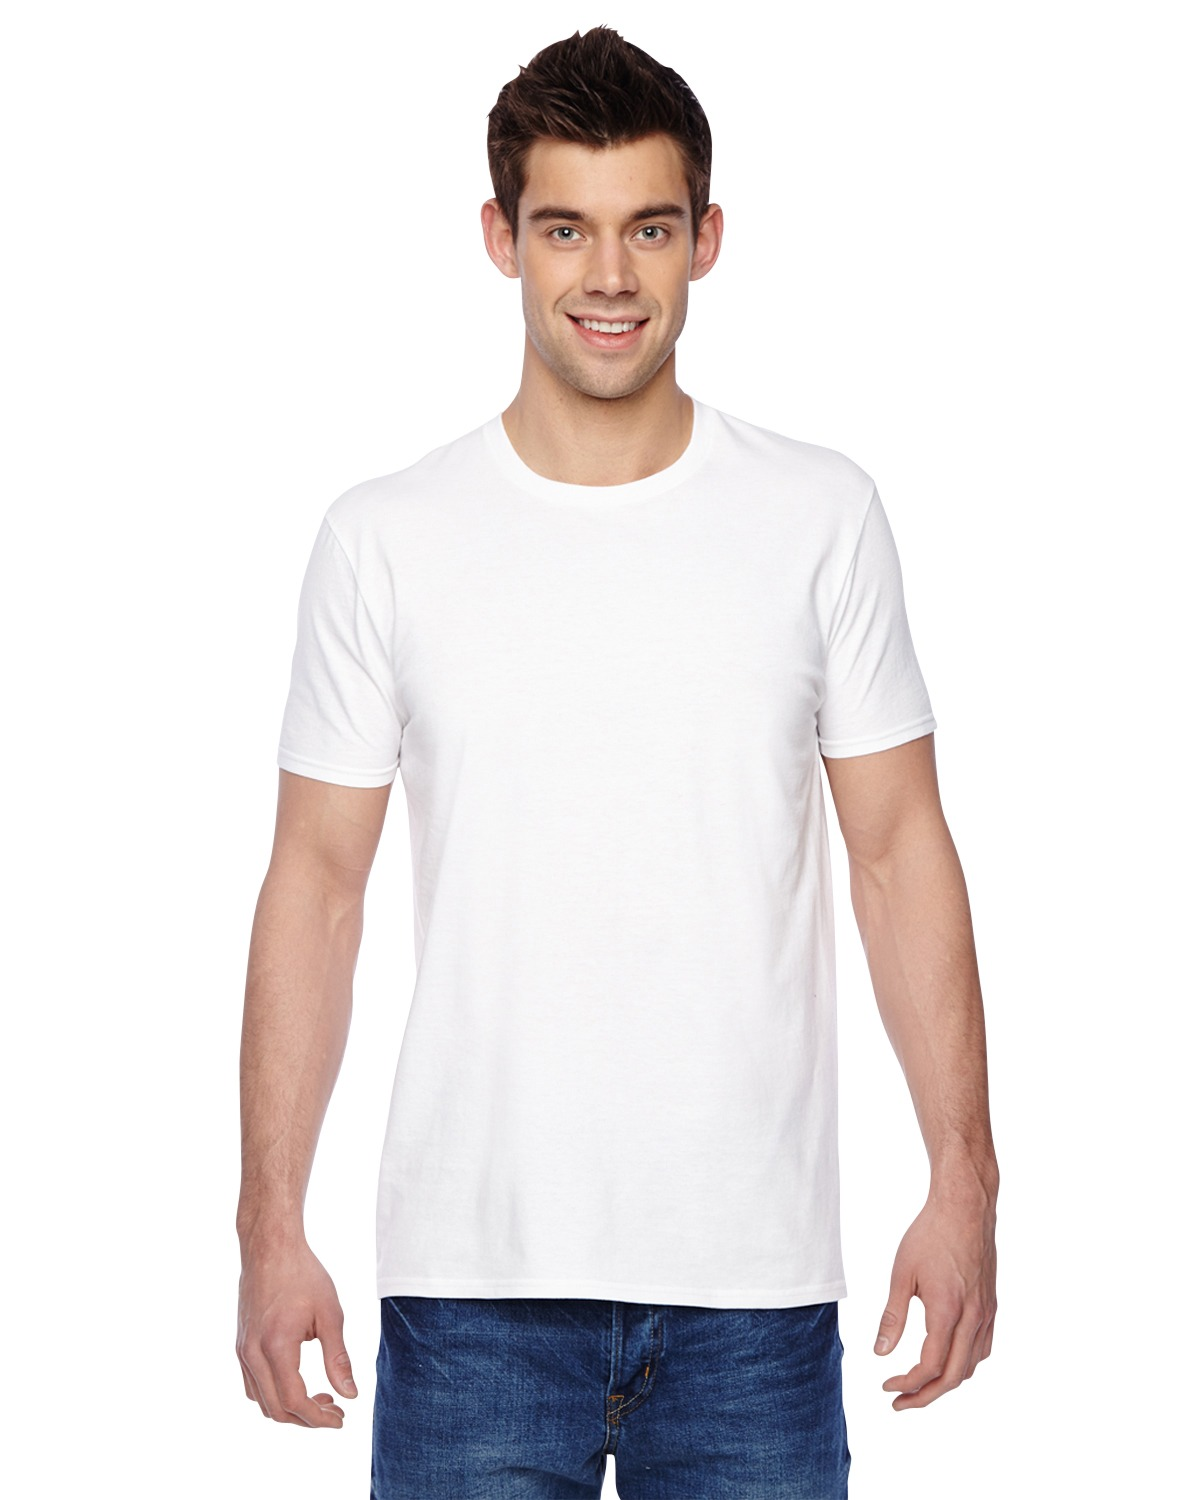 Fruit of the Loom SF45R Men 4.7 oz., 100% Sofspun Cotton Jersey Crew T-Shirt at GotApparel